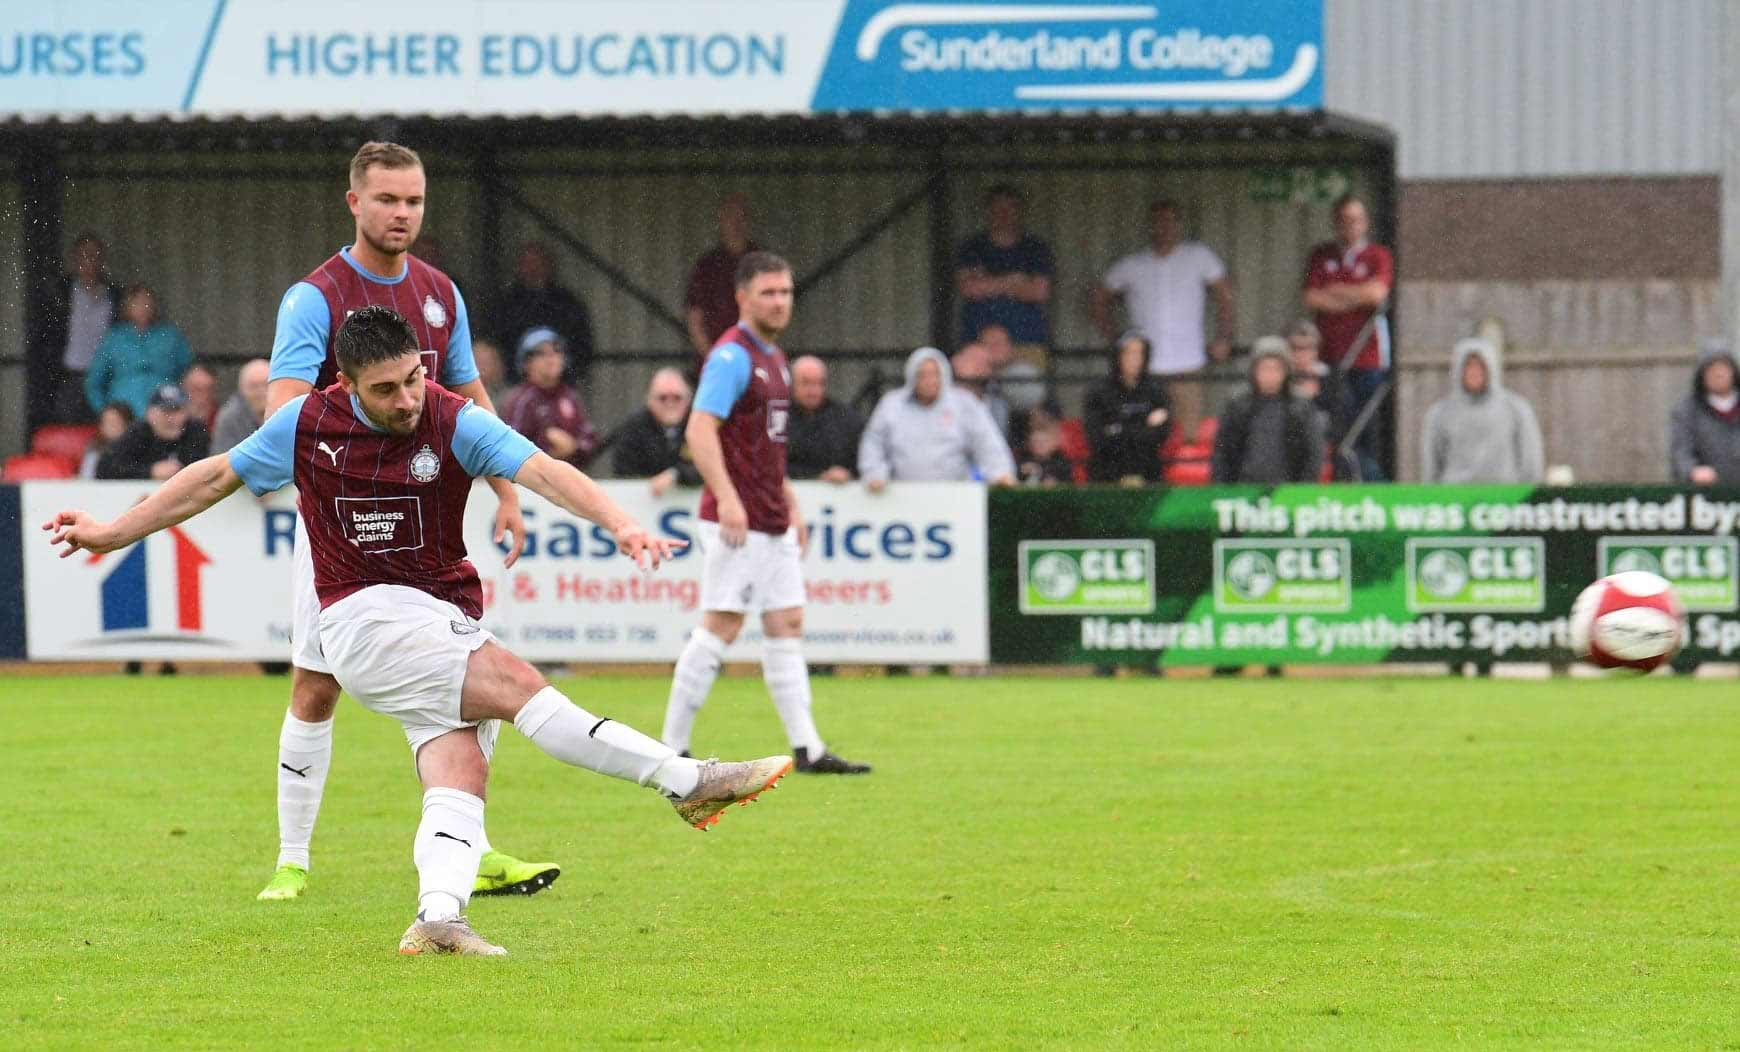 South Shields 2-1 Cleethorpes: Gillies strikes winner in Jak Fada Memorial Trophy match